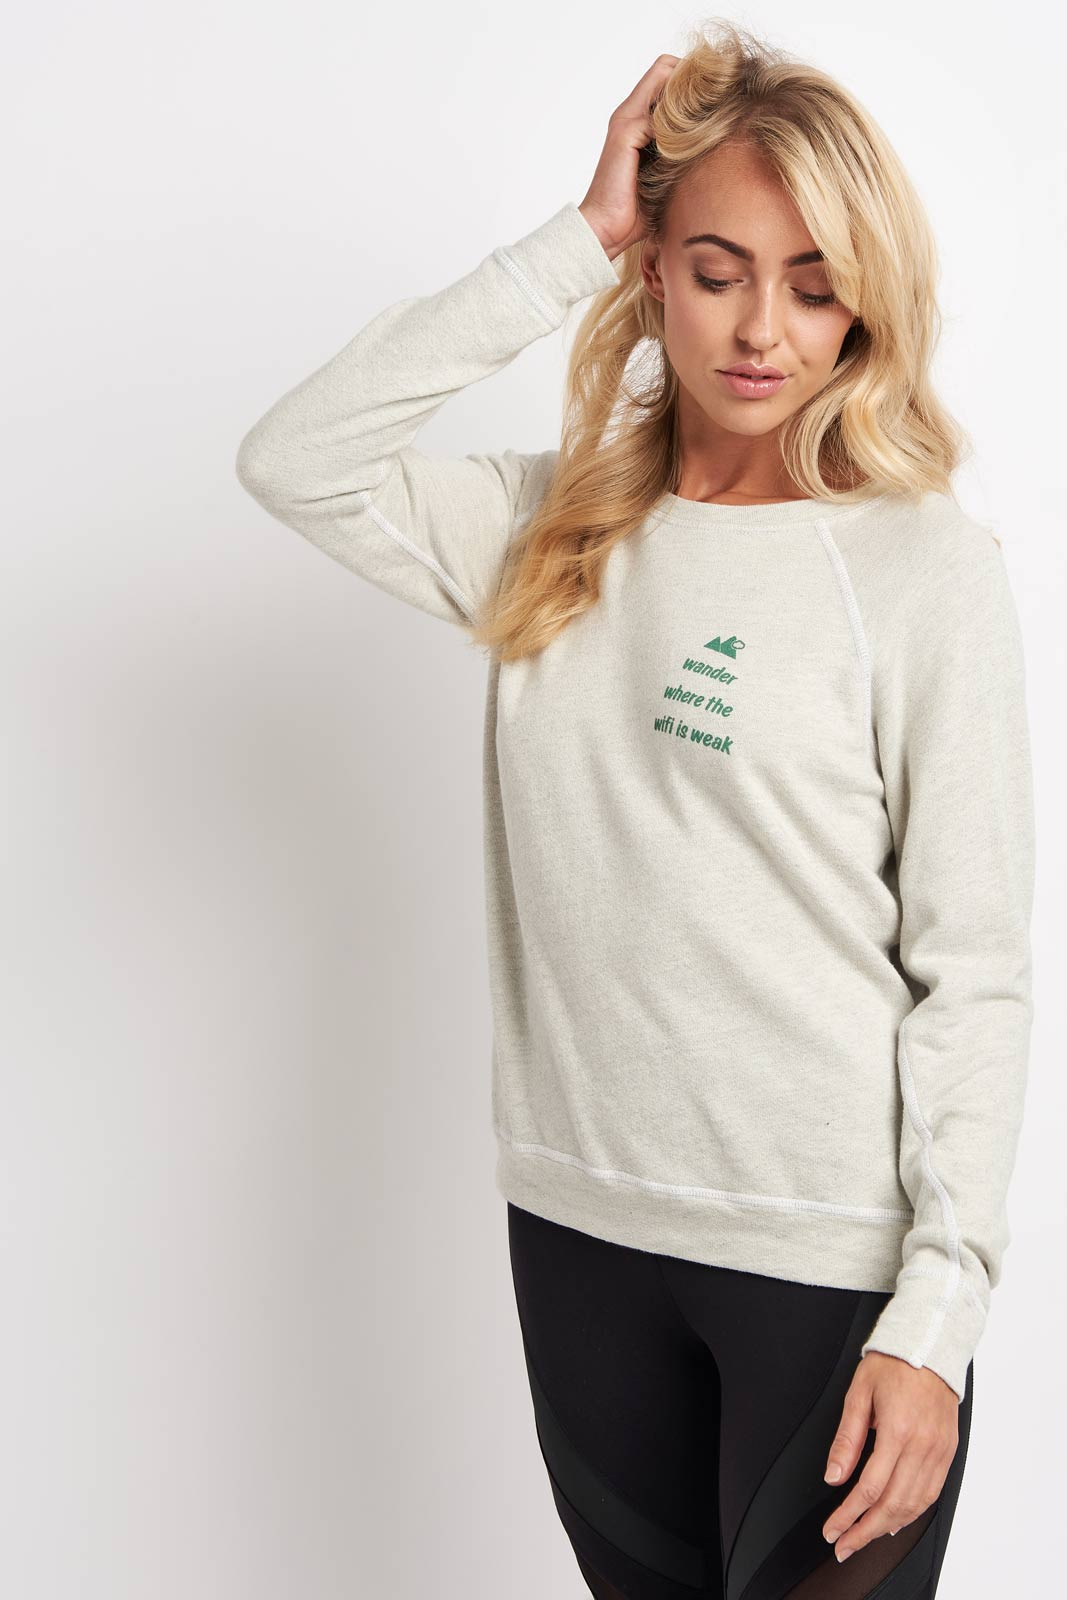 good hYOUman Wander where the Wifi - Crew Pullover image 1 - The Sports Edit